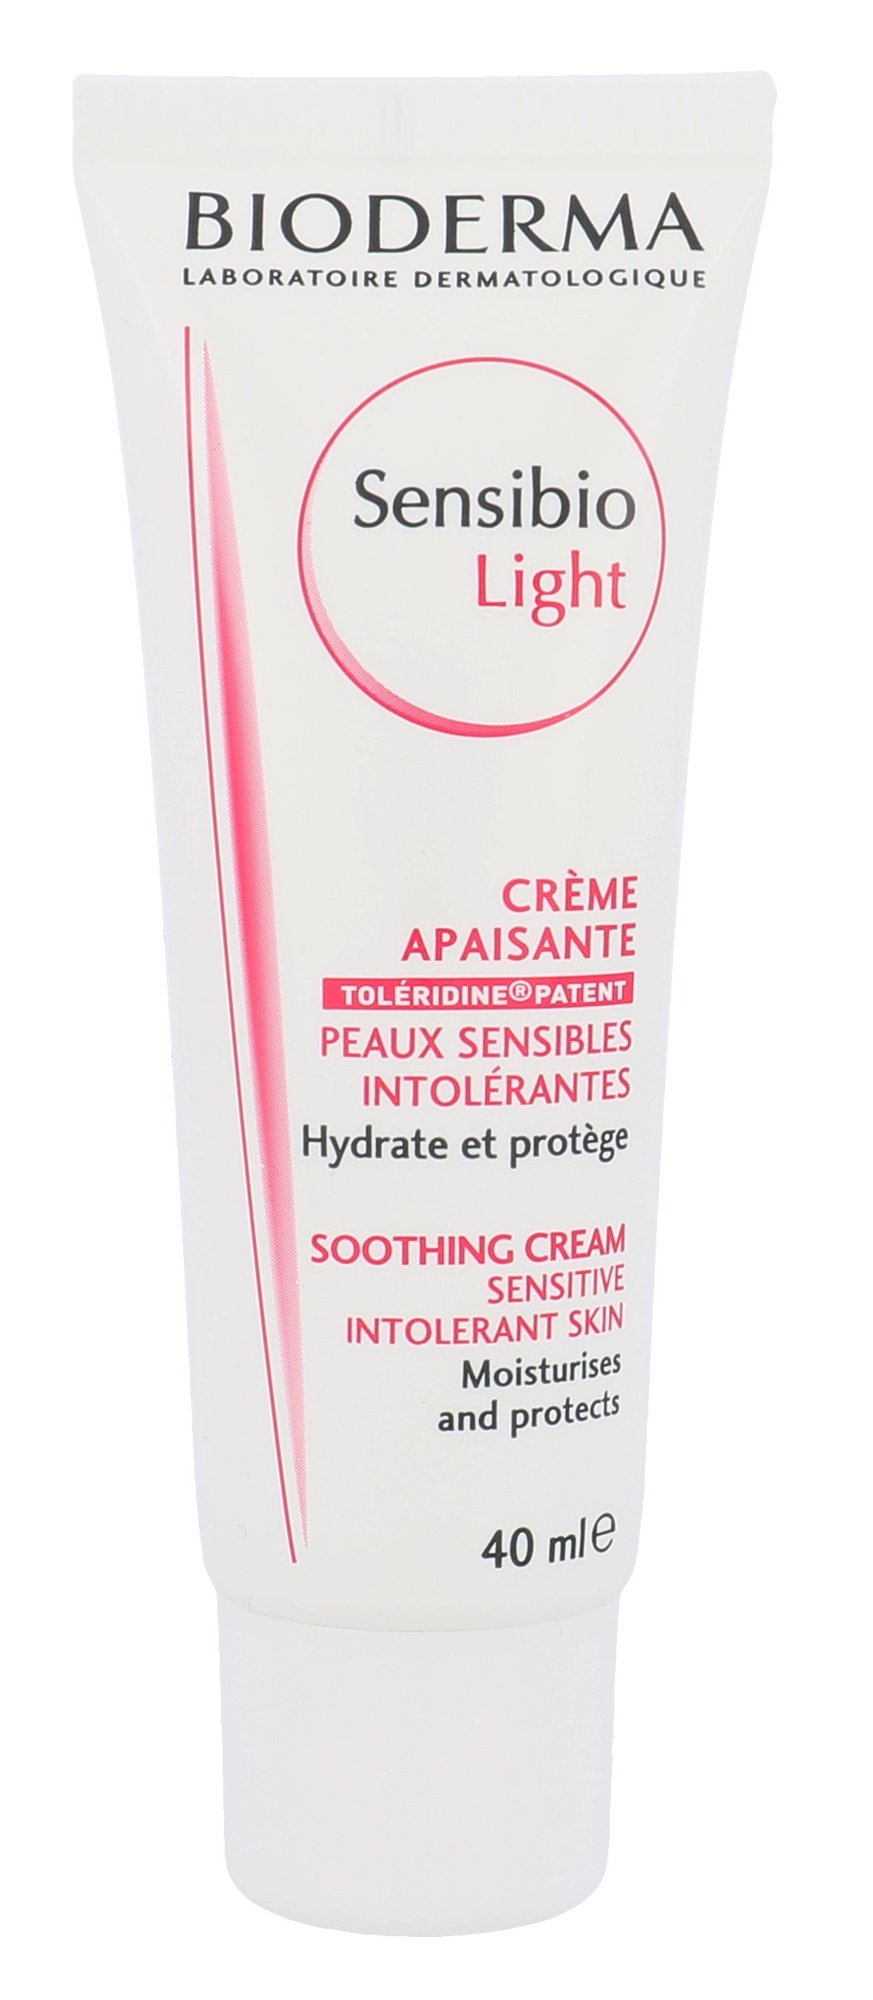 BIODERMA Sensibio Cosmetic 40ml  Light Soothing Cream